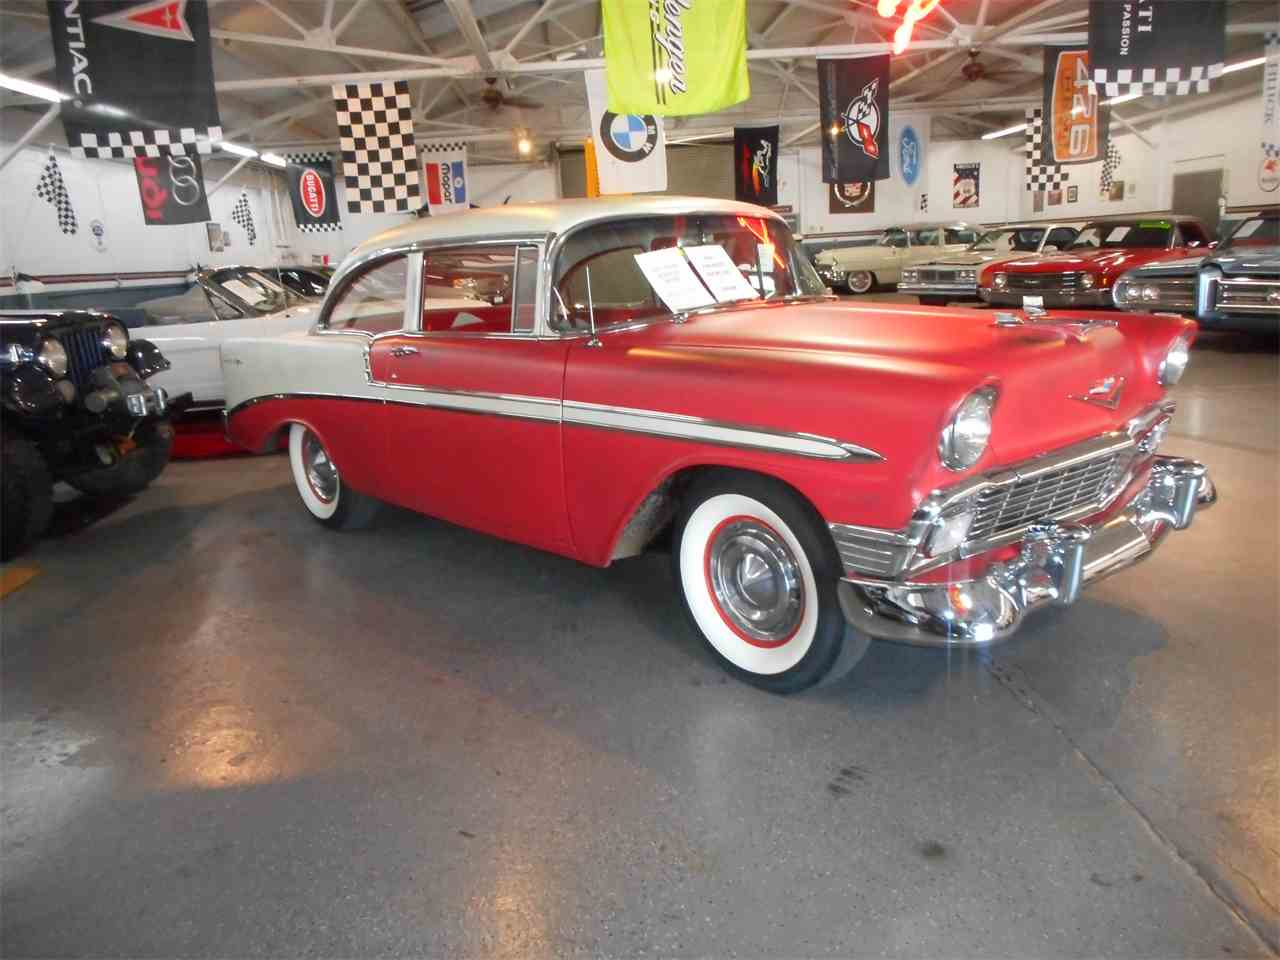 1956 chevrolet bel air for sale classic car liquidators - 1956 Chevrolet 210 For Sale Cc 1036407